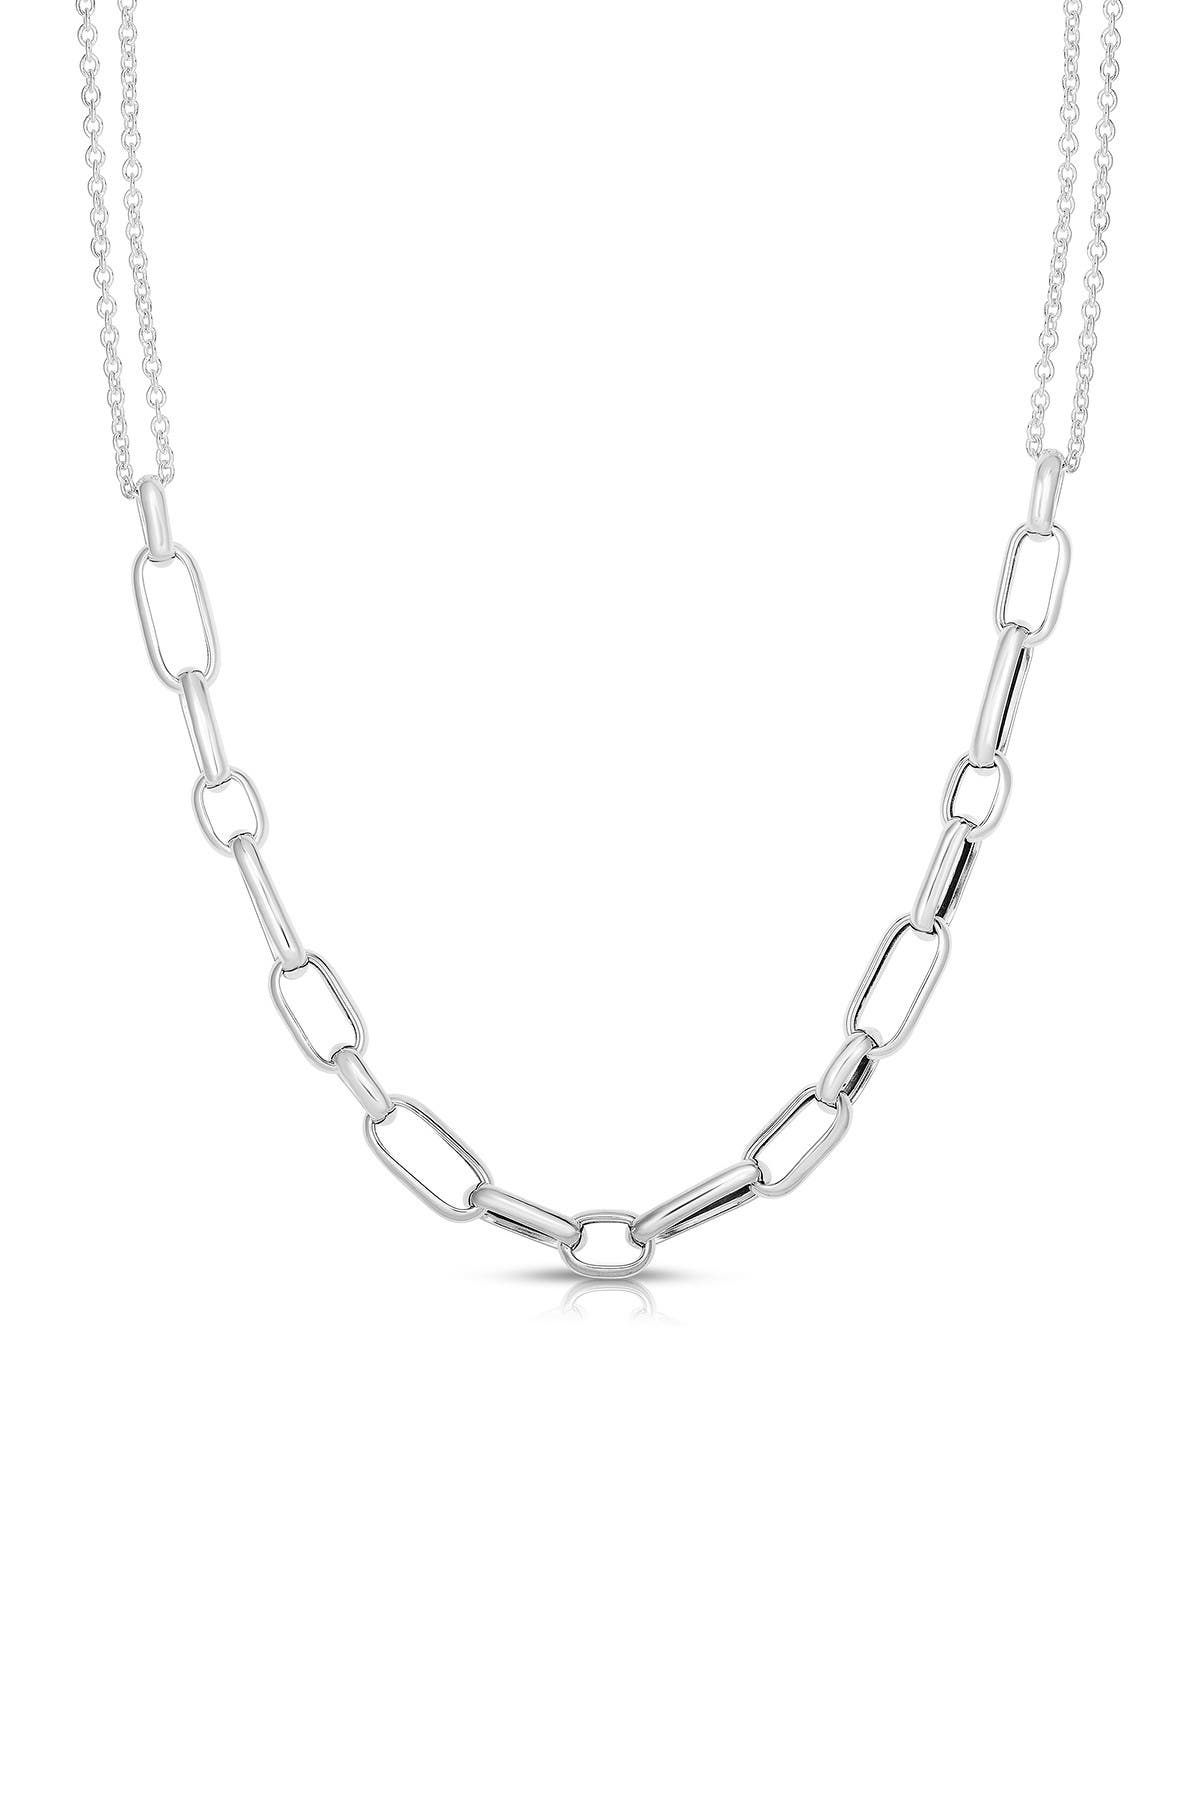 Image of Sphera Milano Rhodium Plated Sterling Silver Chain Necklace